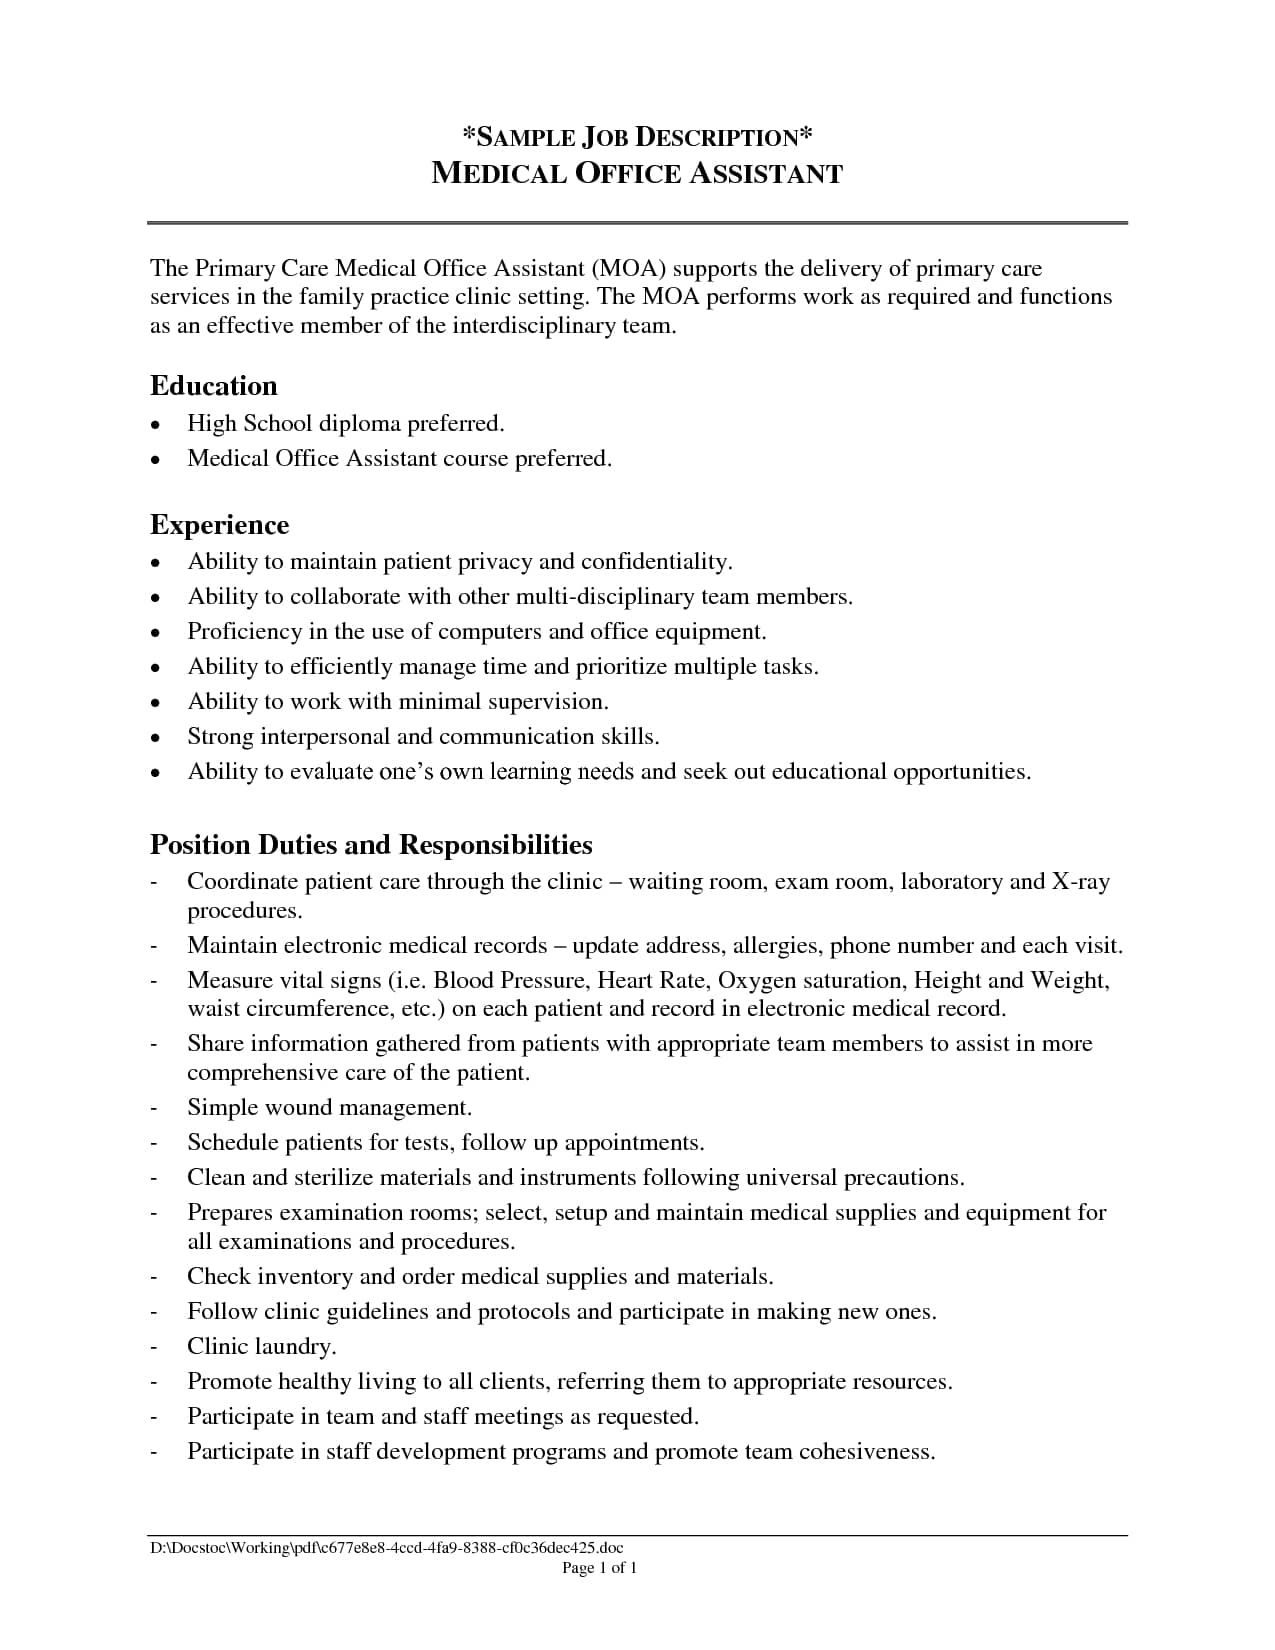 Certified Medical Assistant Cover Letter Resume Administrative